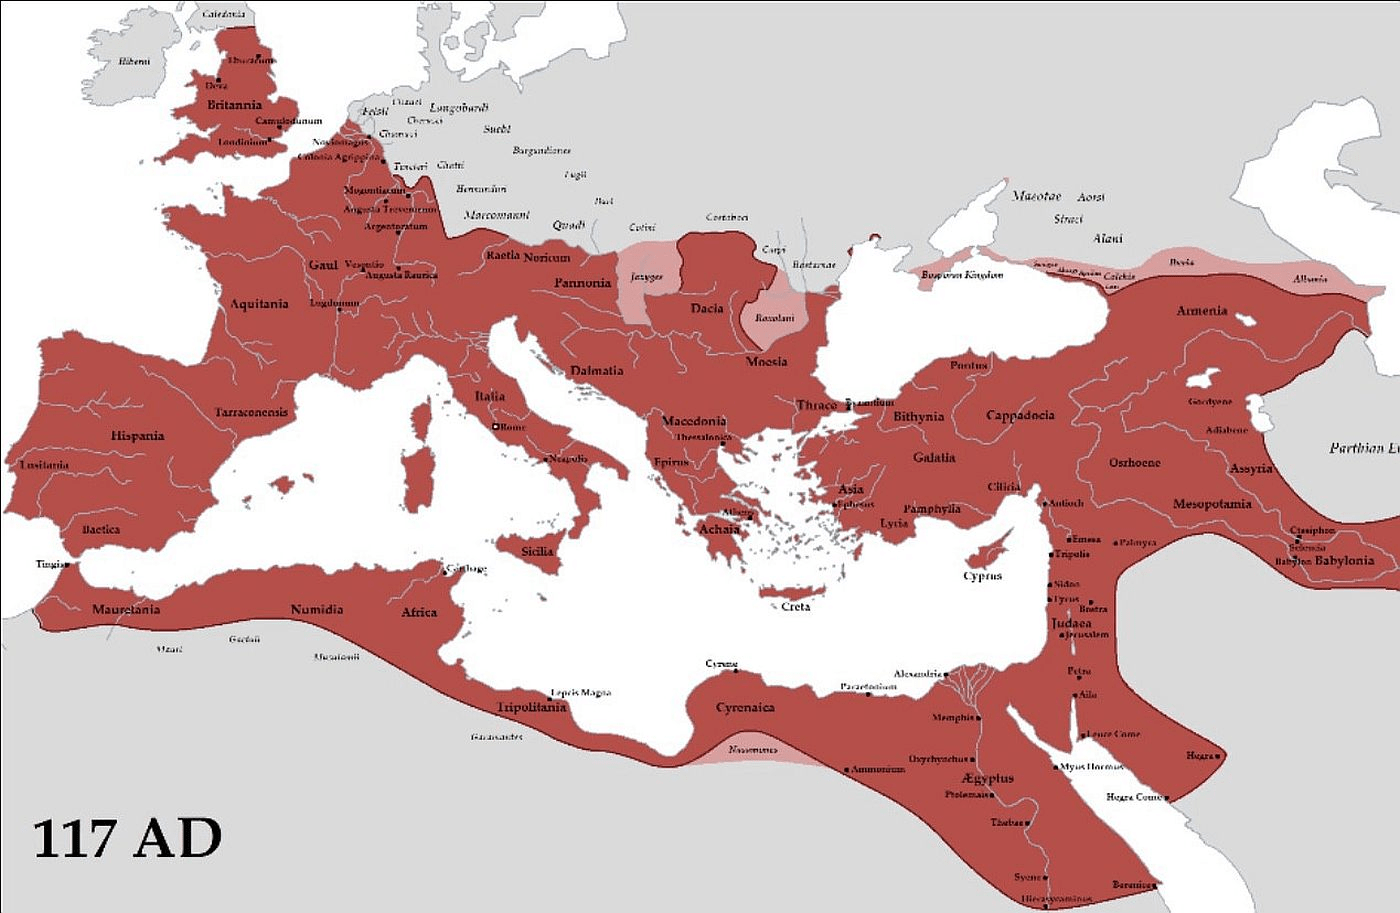 Map of the Roman Empire after the conquest of Nabatea